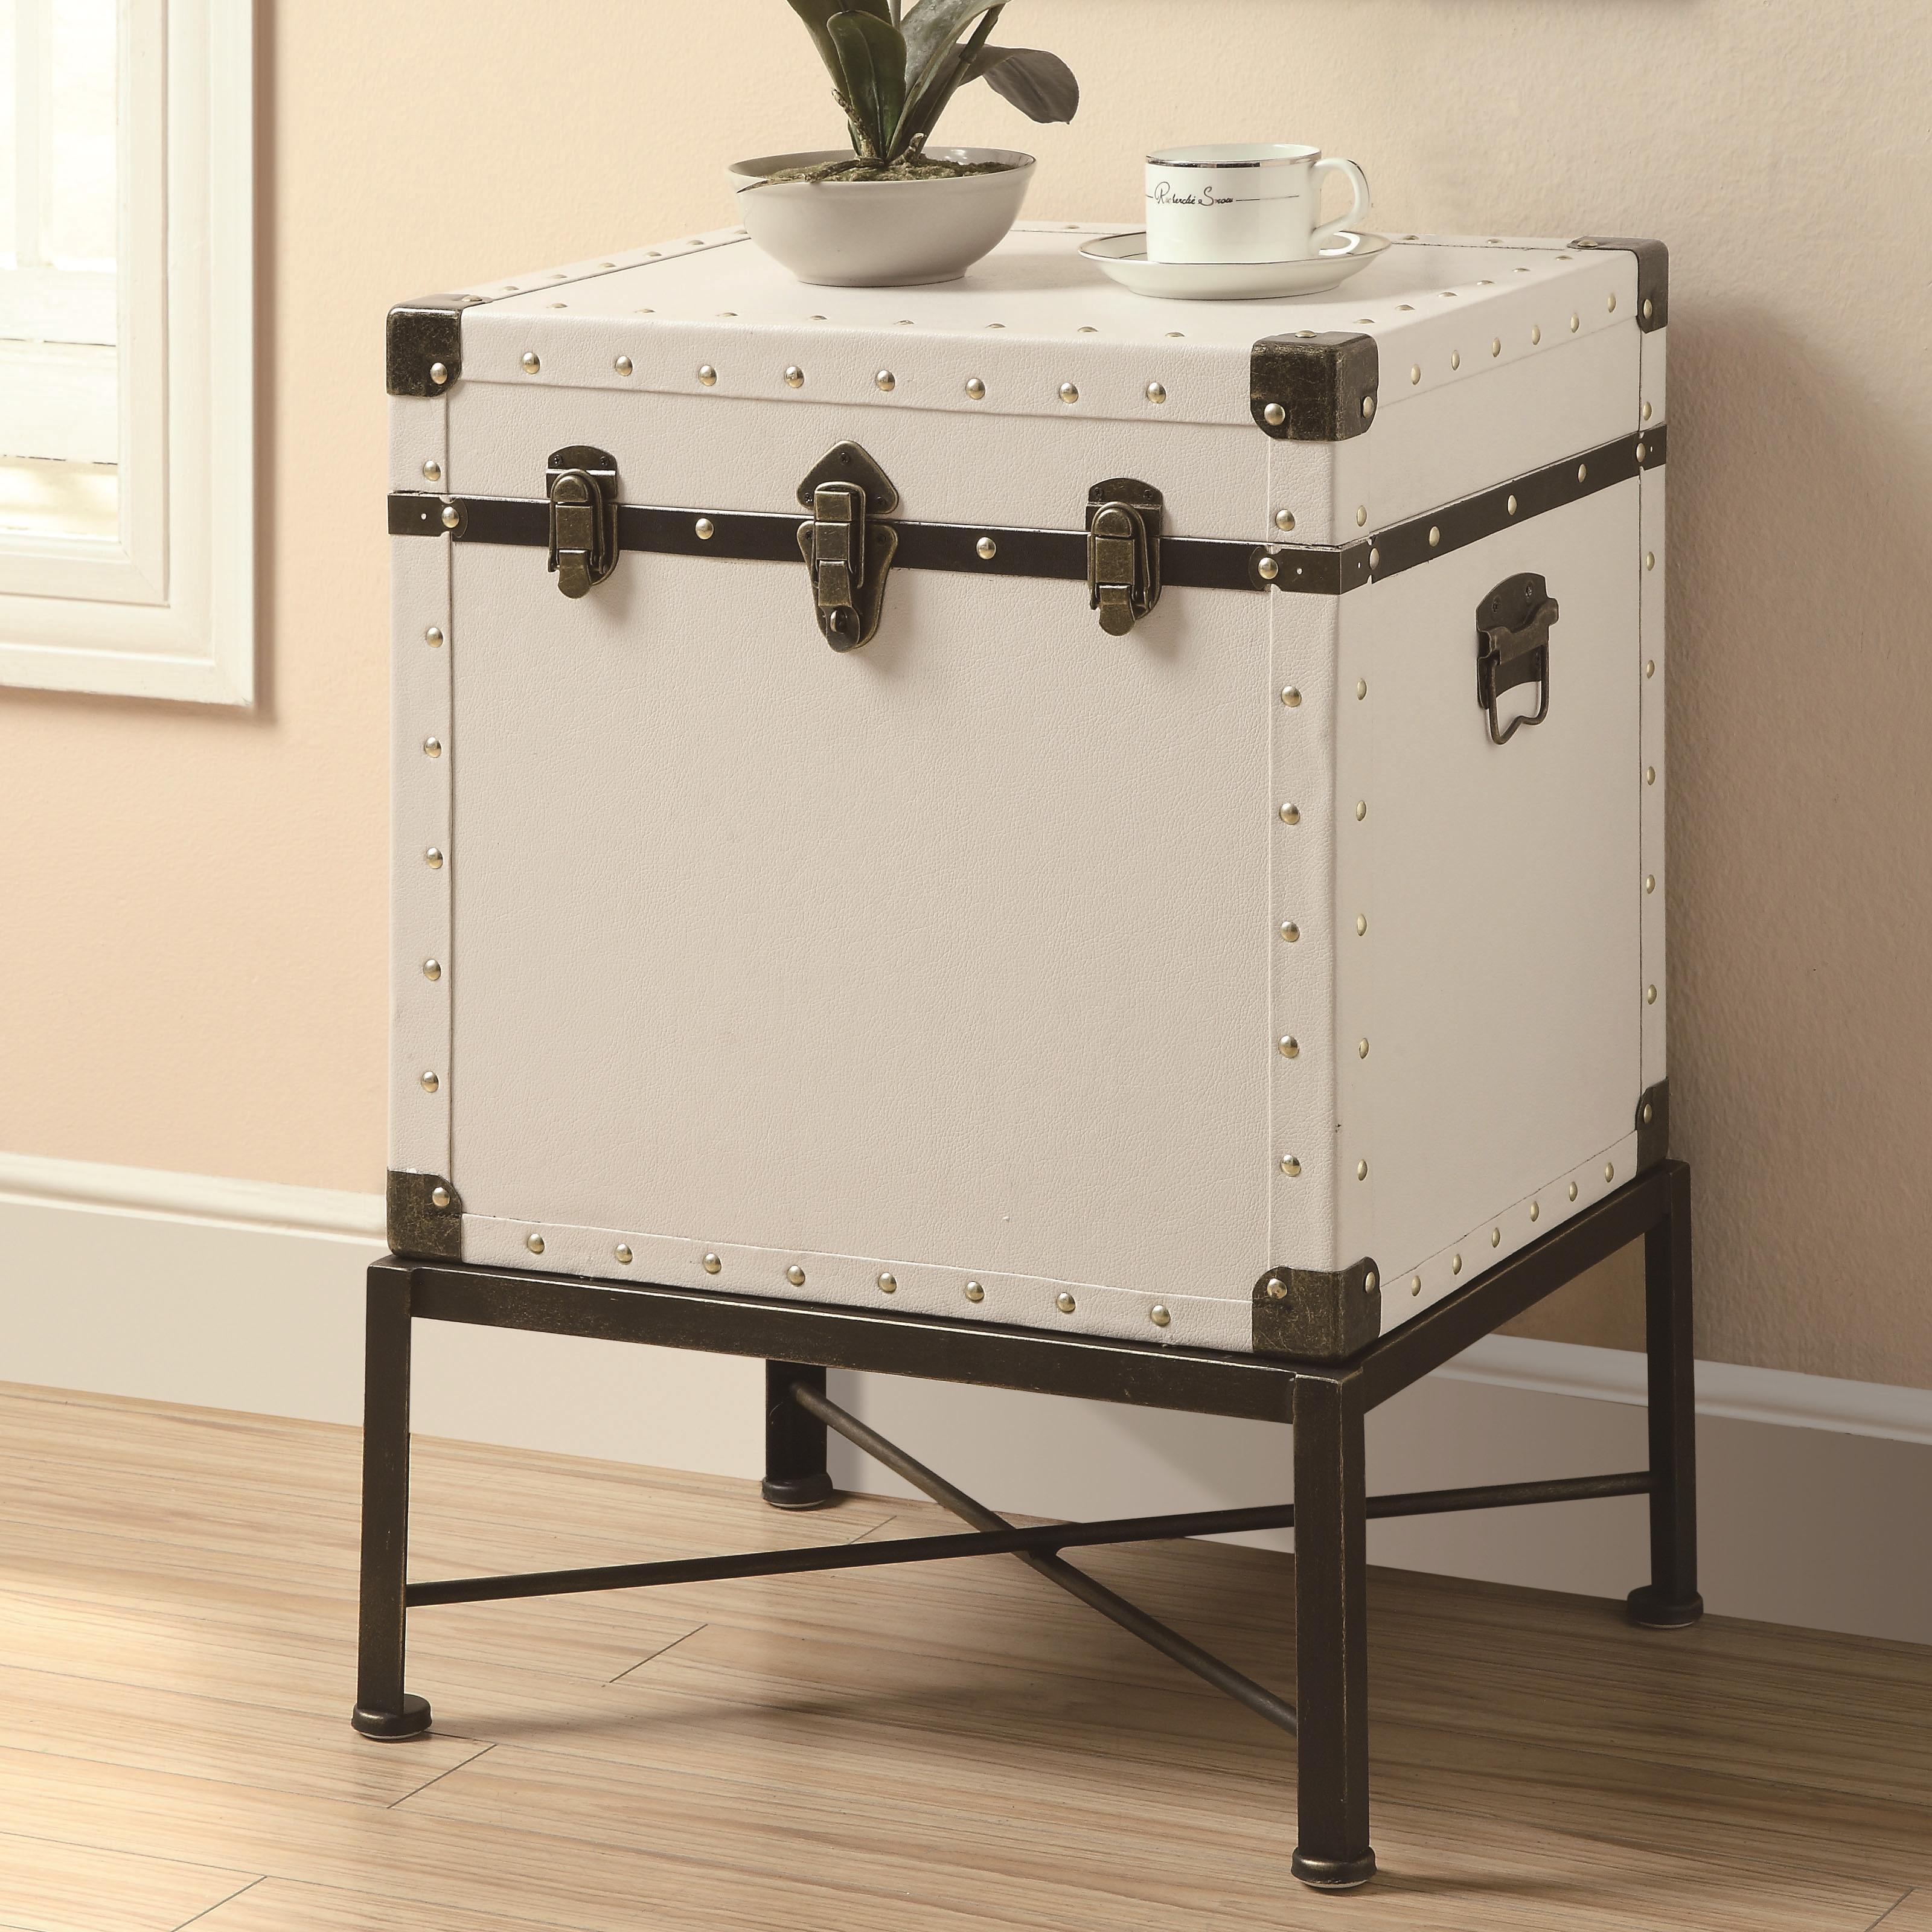 coaster accent cabinets trunk style side table value city products color cabinet black wood white wire lily lamp barn door designs designer round tablecloths willow furniture high